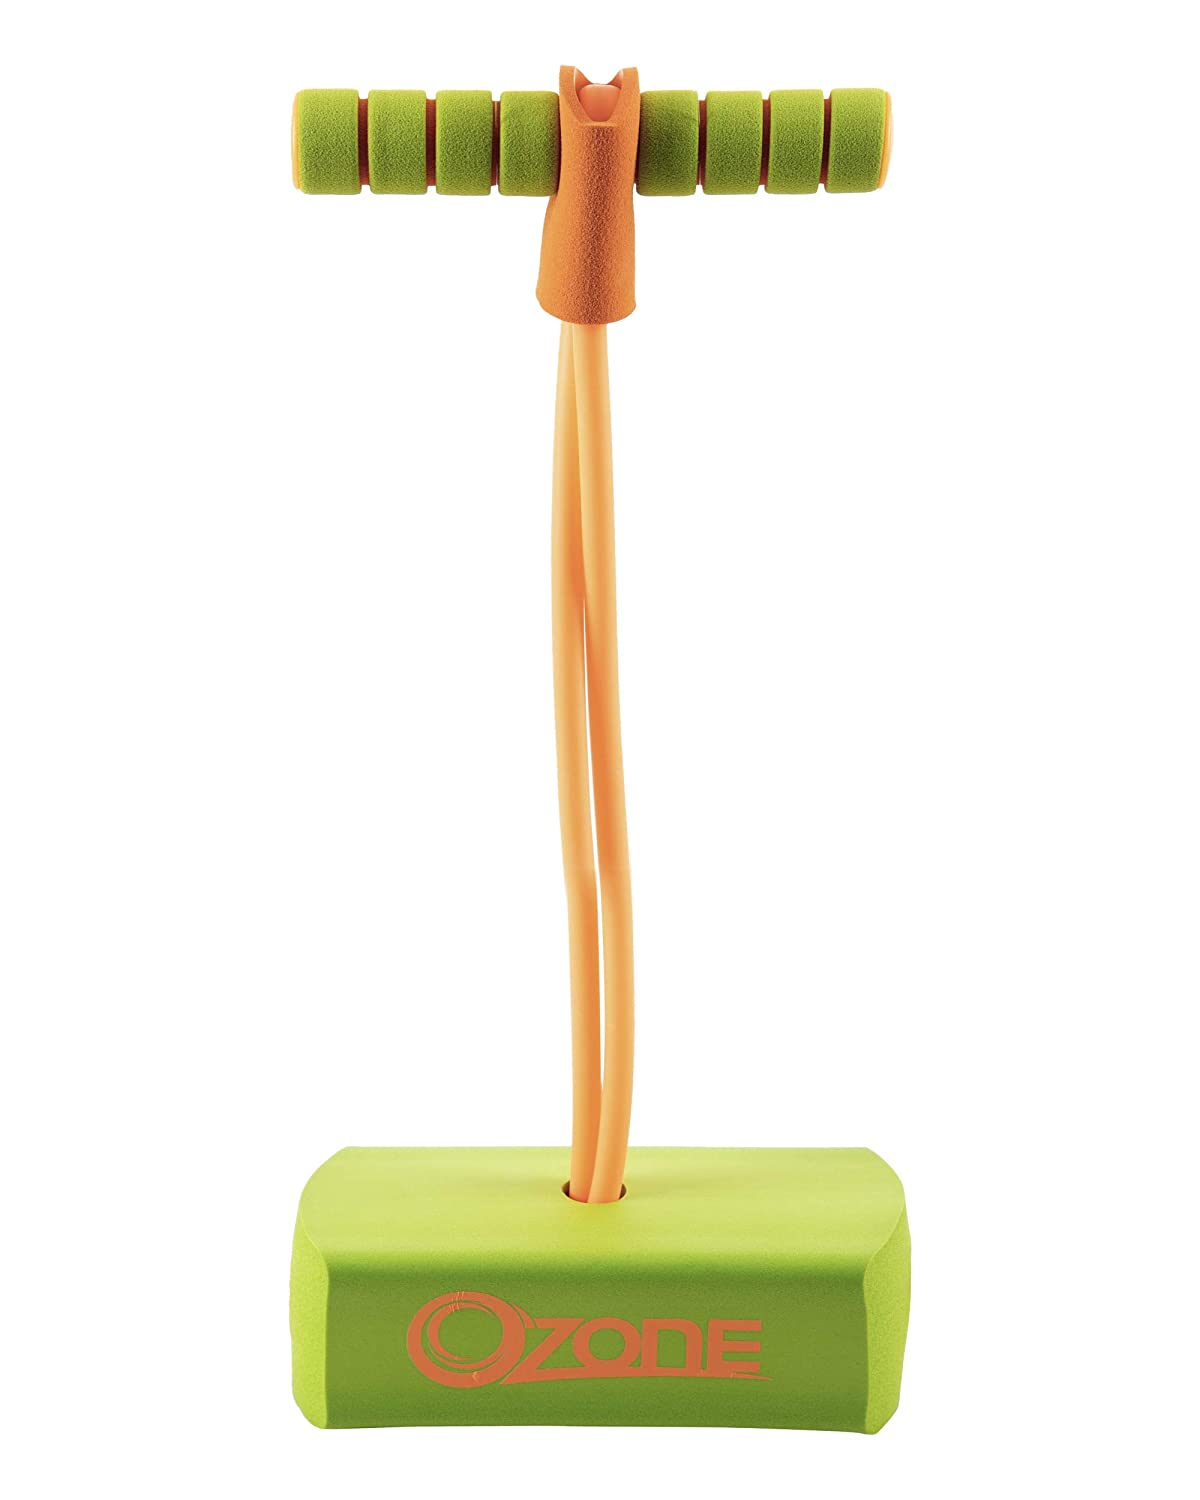 Ozone Jump Squeak Pogo Hopper for Kids Fun and Safe Pogo Stick for Toddlers Durable Foam and Bungee Jumper for Ages 3 and up Supports up to 250lbs